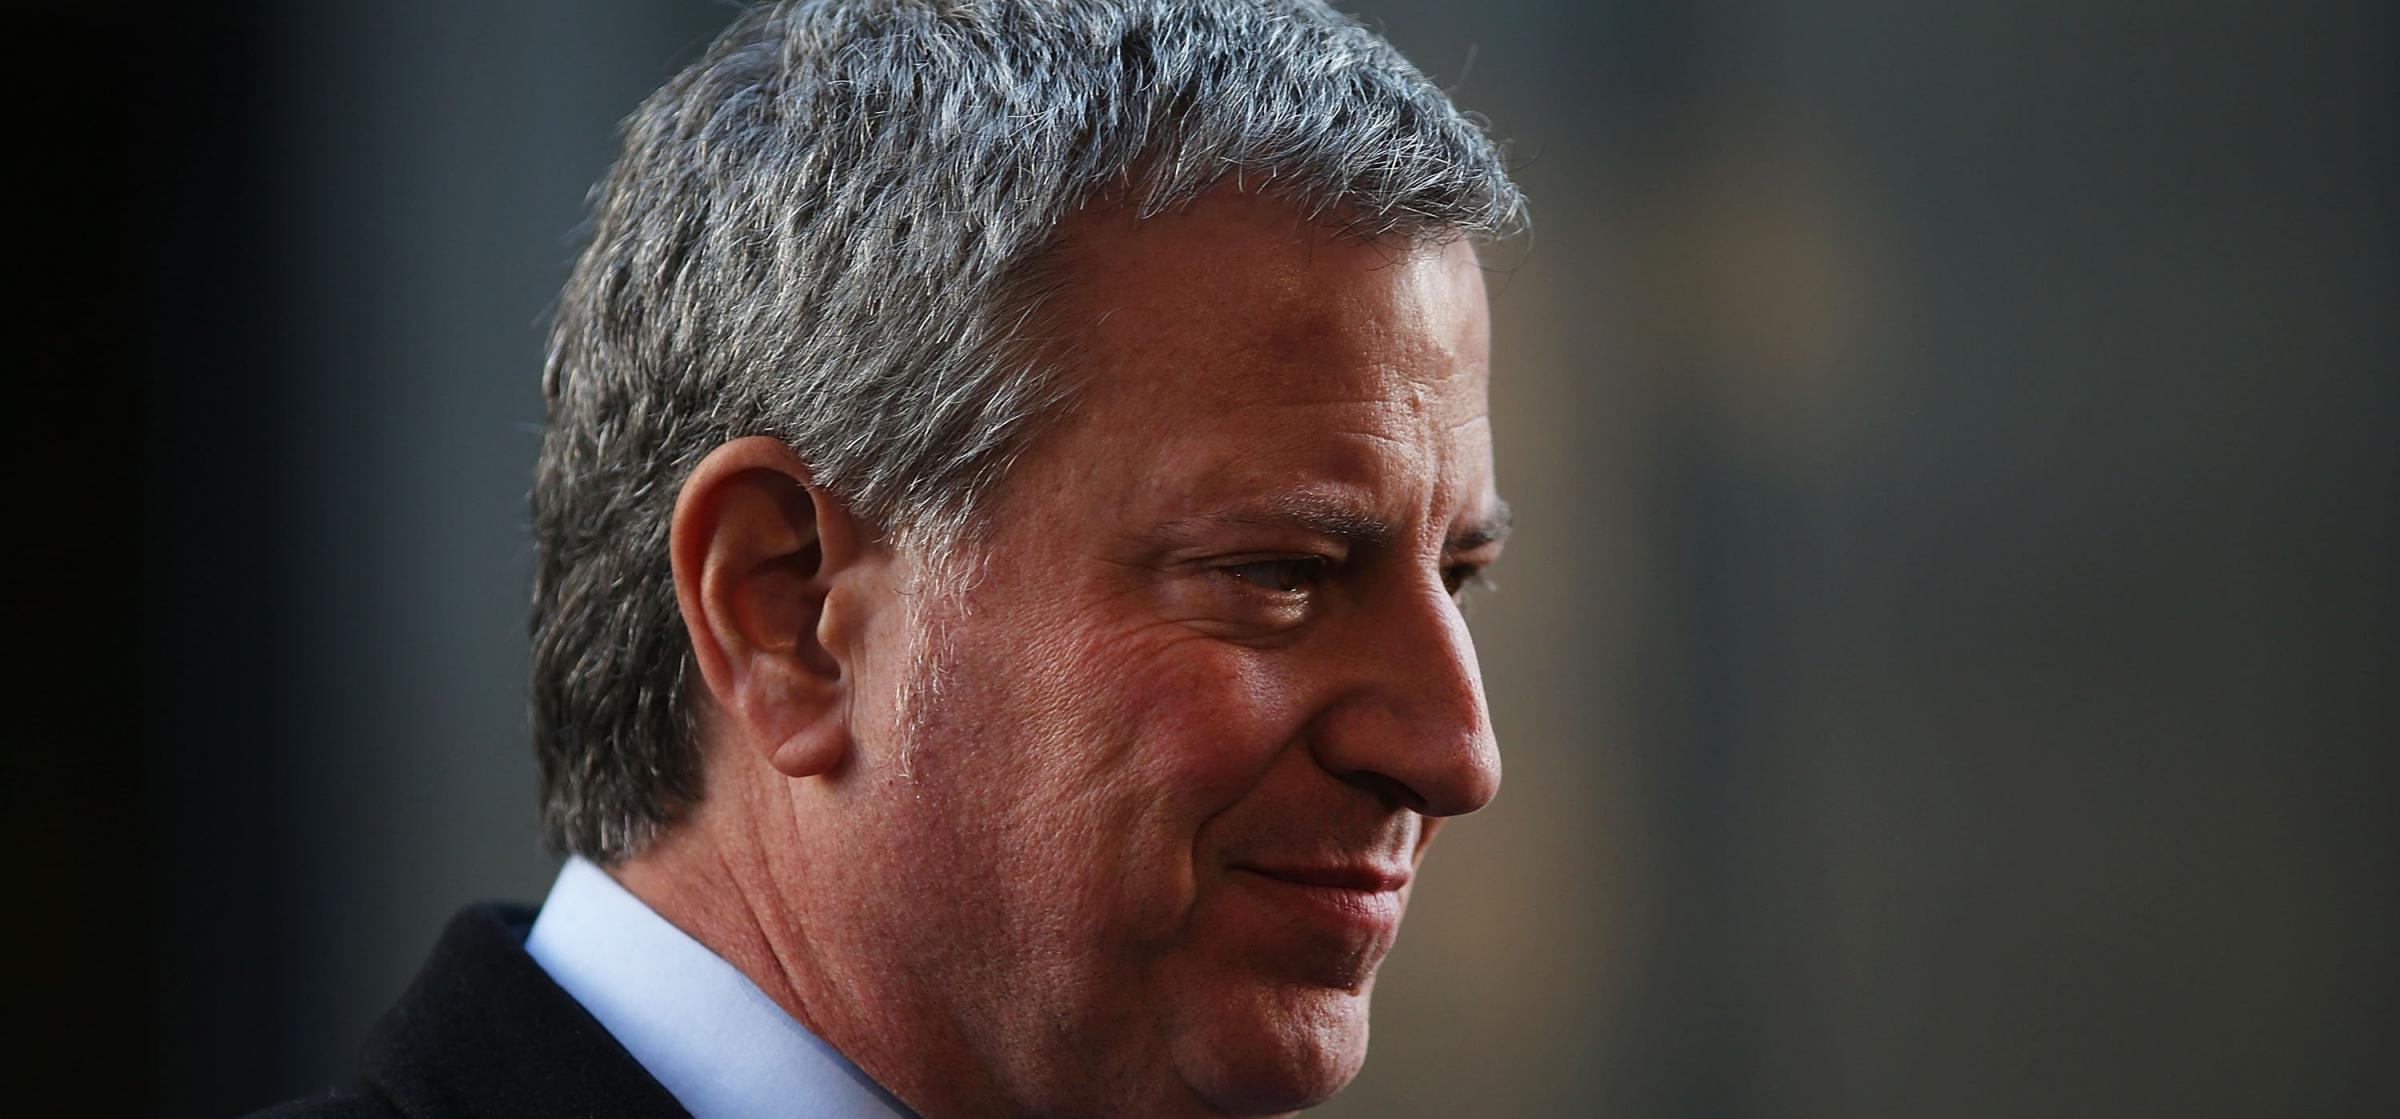 Bill de Blasio is taking the fight to oil companies. Photograph: Getty